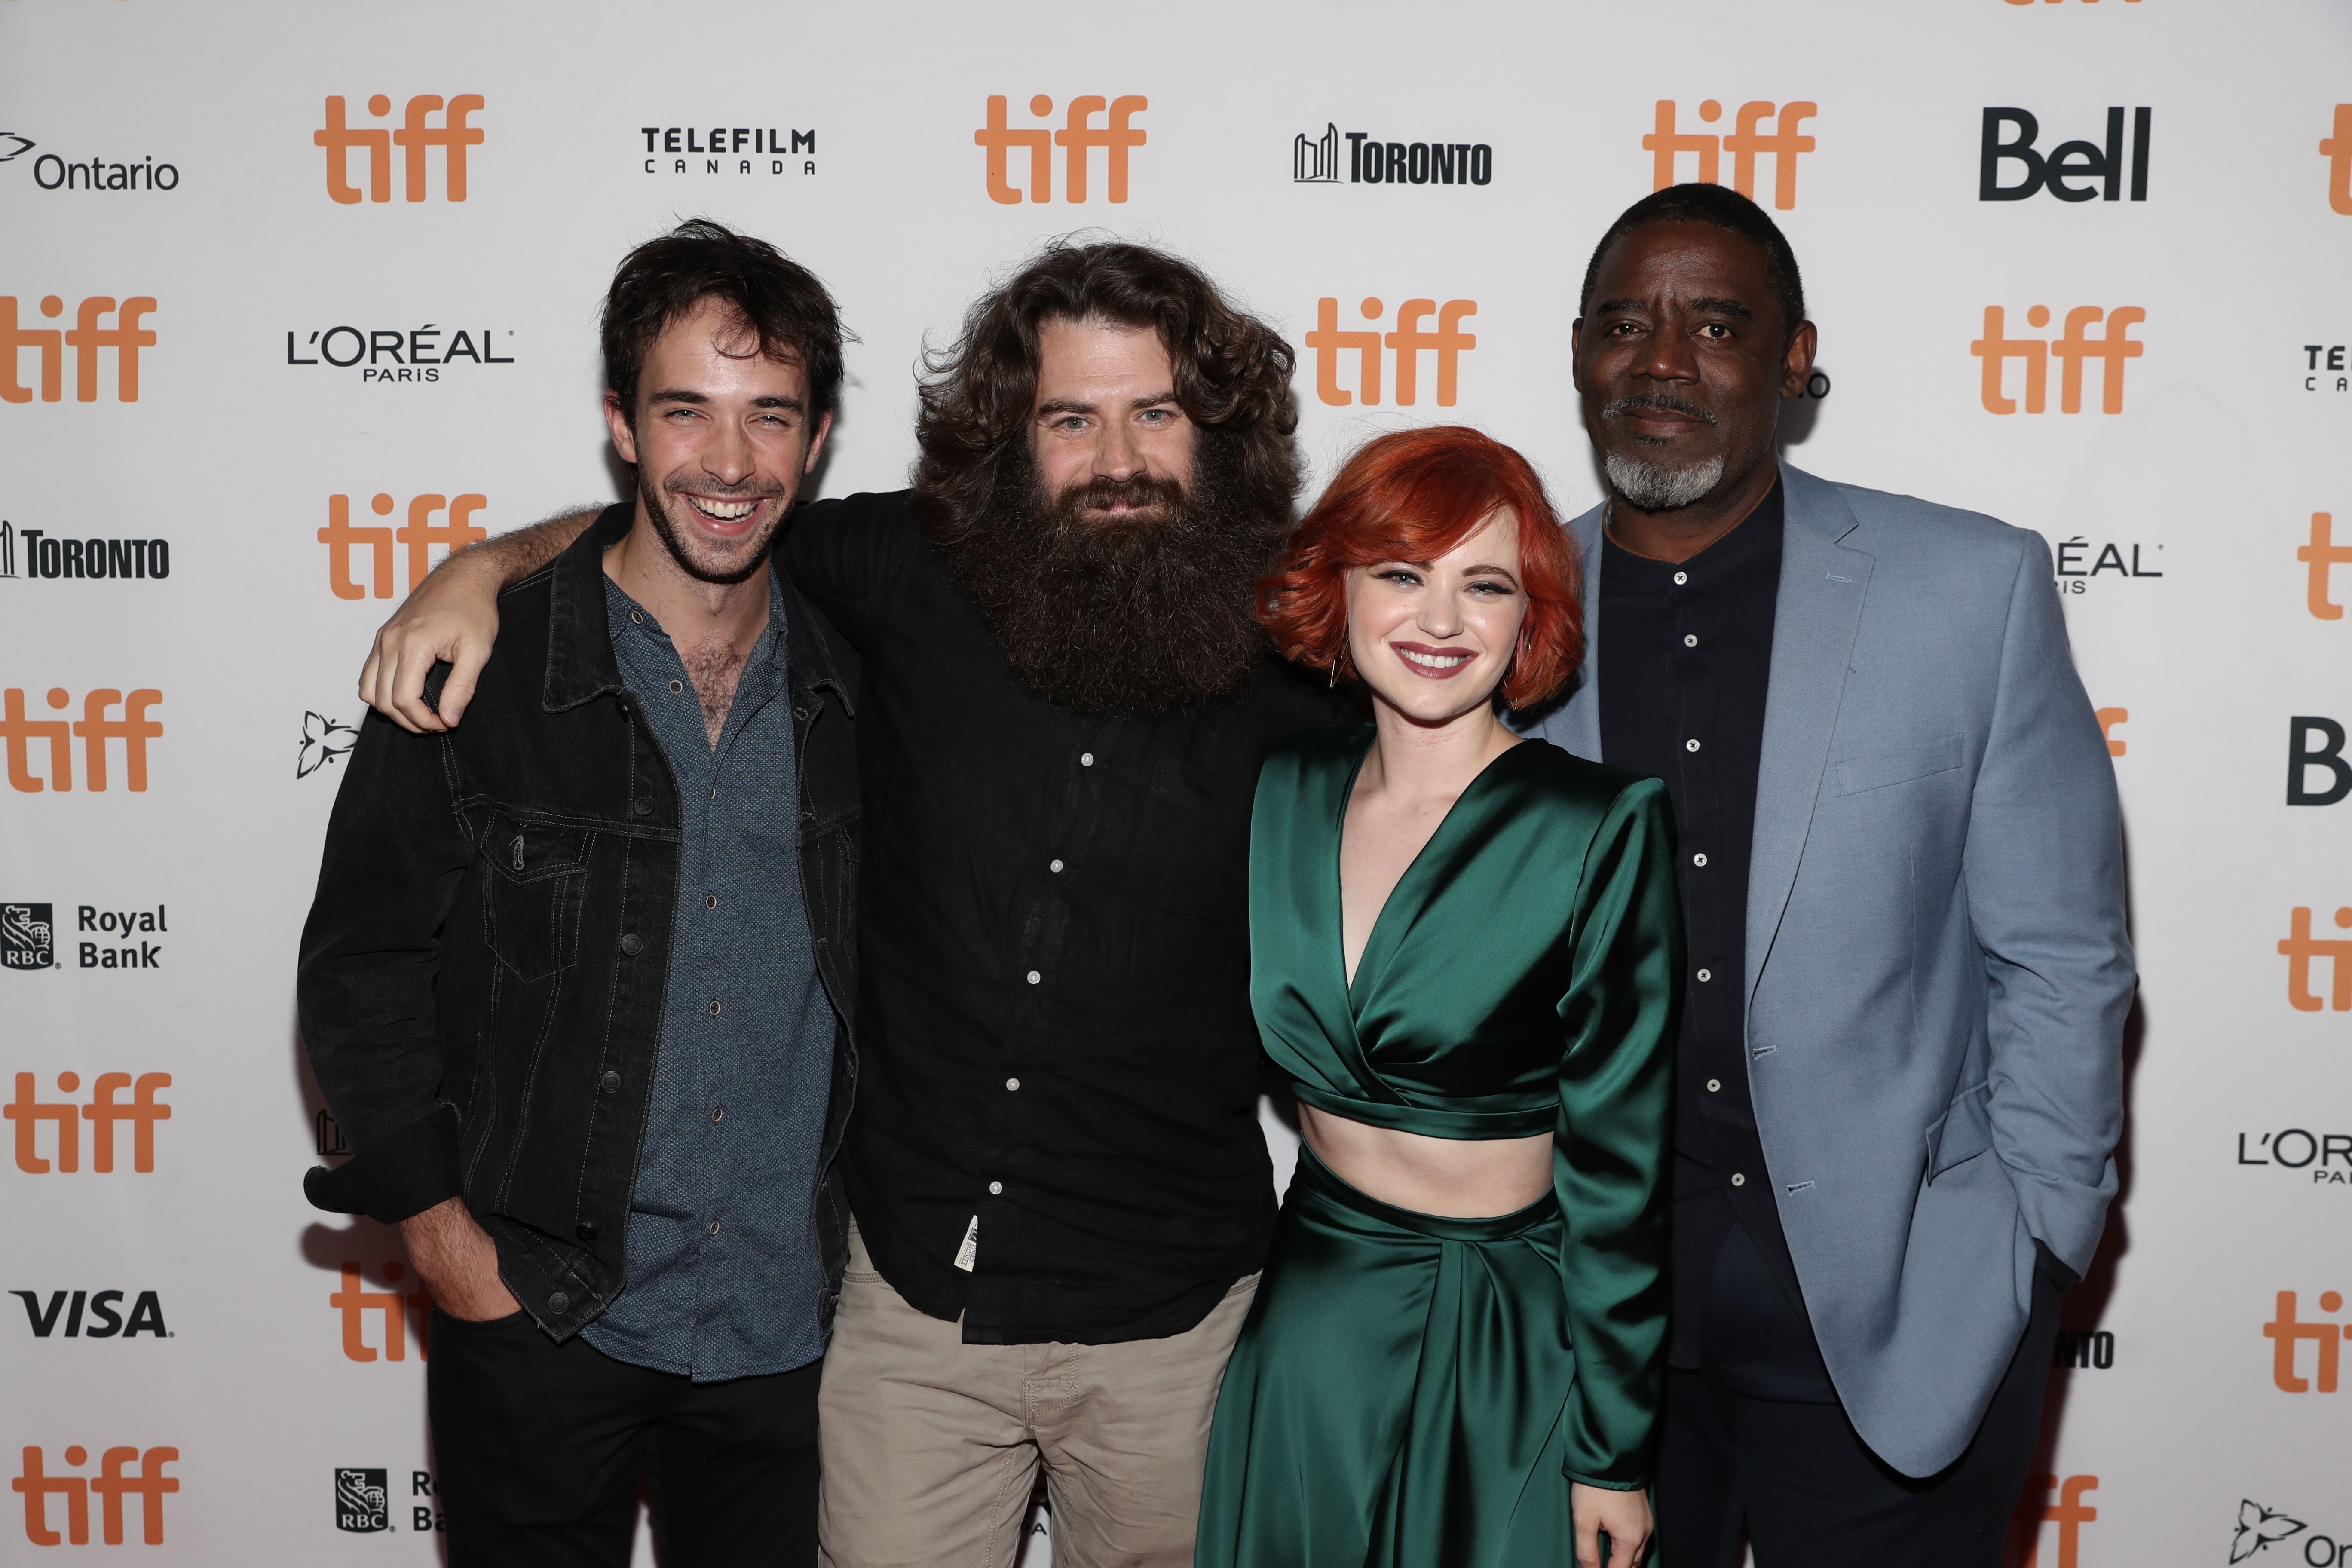 Jake Horowitz, Director Andrew Patterson, Sierra McCormick and Bruce Davis'The Vast of Night' premiere, Arrivals, Toronto International Film Festival, Canada - 12 Sep 2019